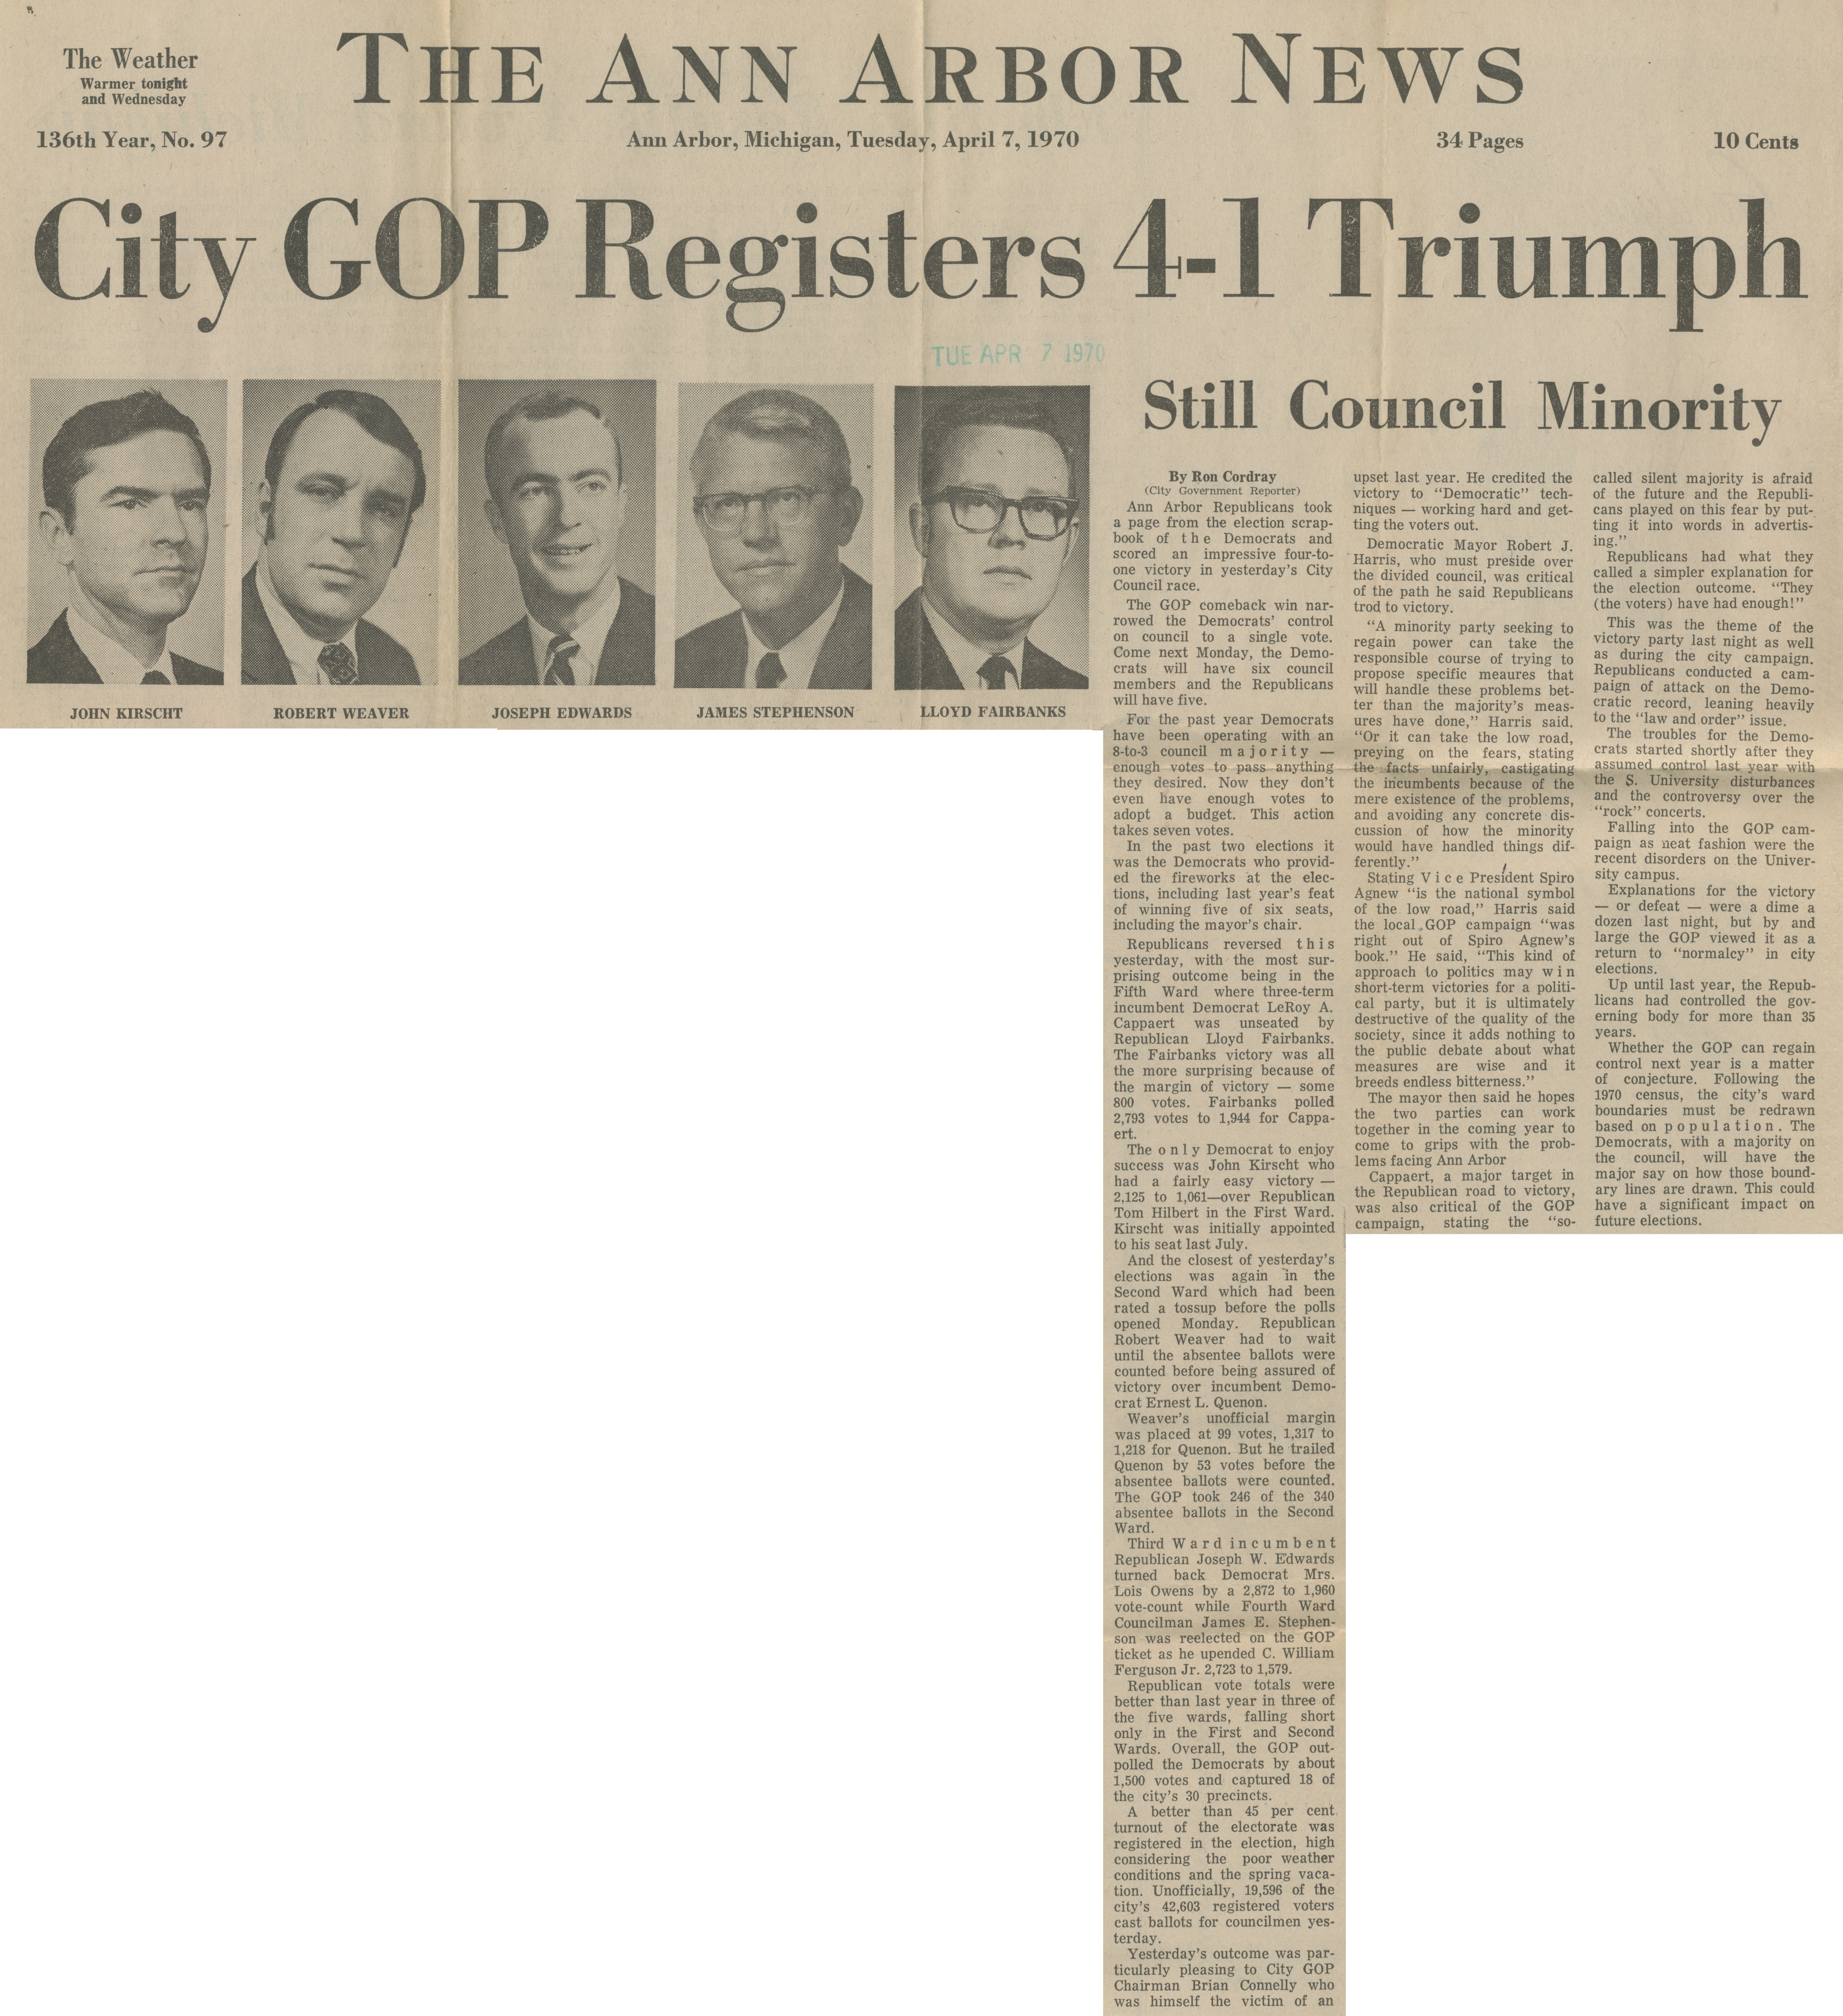 City GOP Registers 4-1 Triumph image